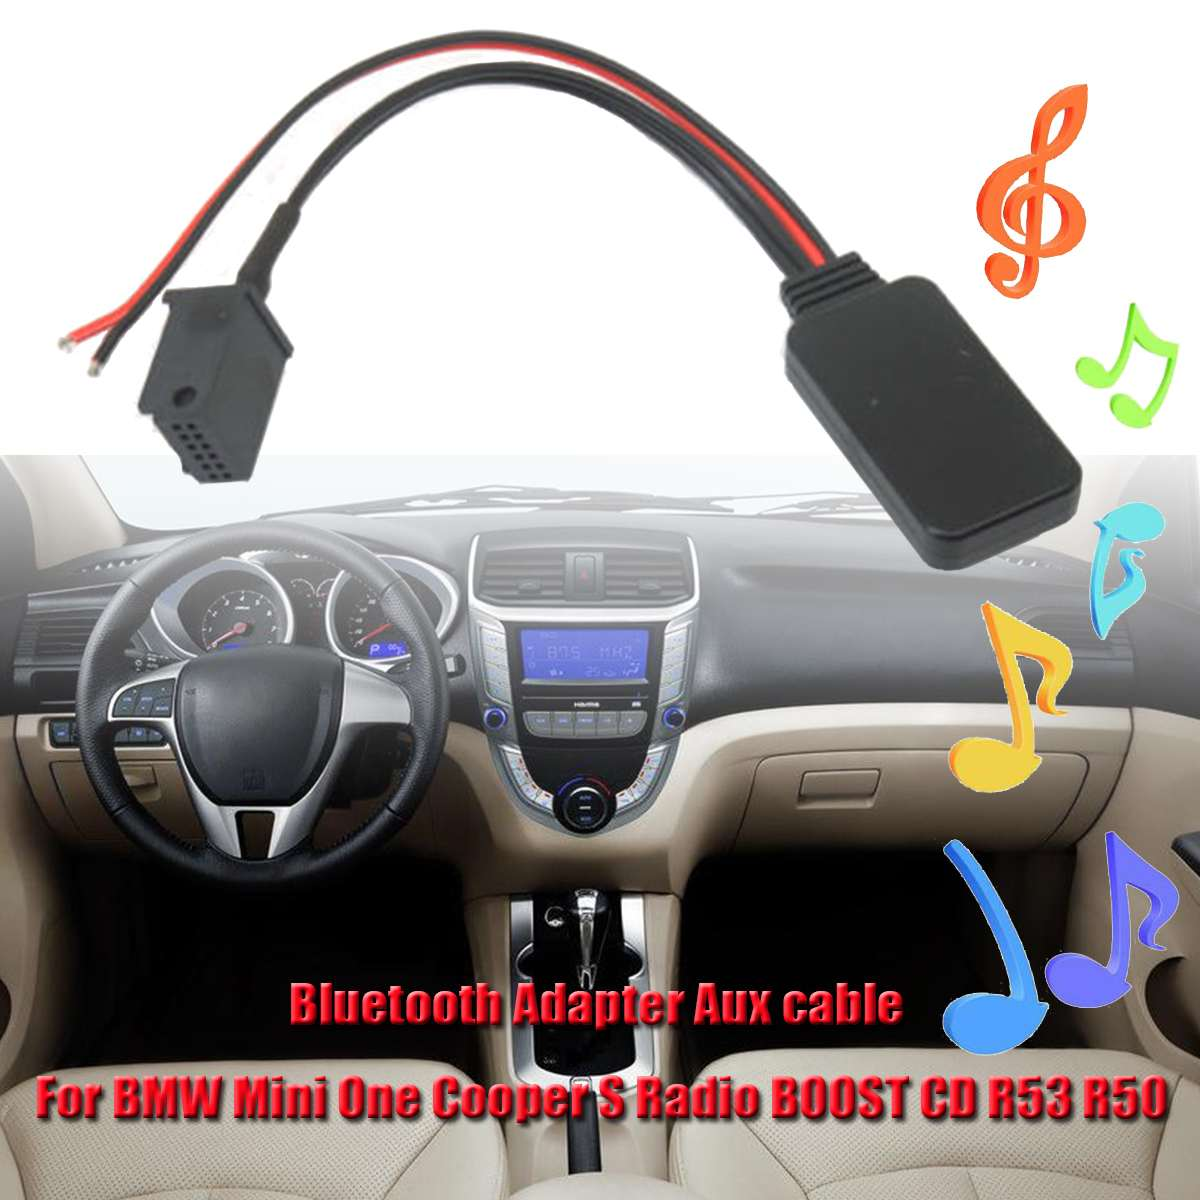 US $8 97 37% OFF|New bluetooth Adapter AUX Audio Cable for BMW Mini for  Cooper S Radio for BOOST CD R53 R50 Speaker Line Subwoofer Cable-in Speaker